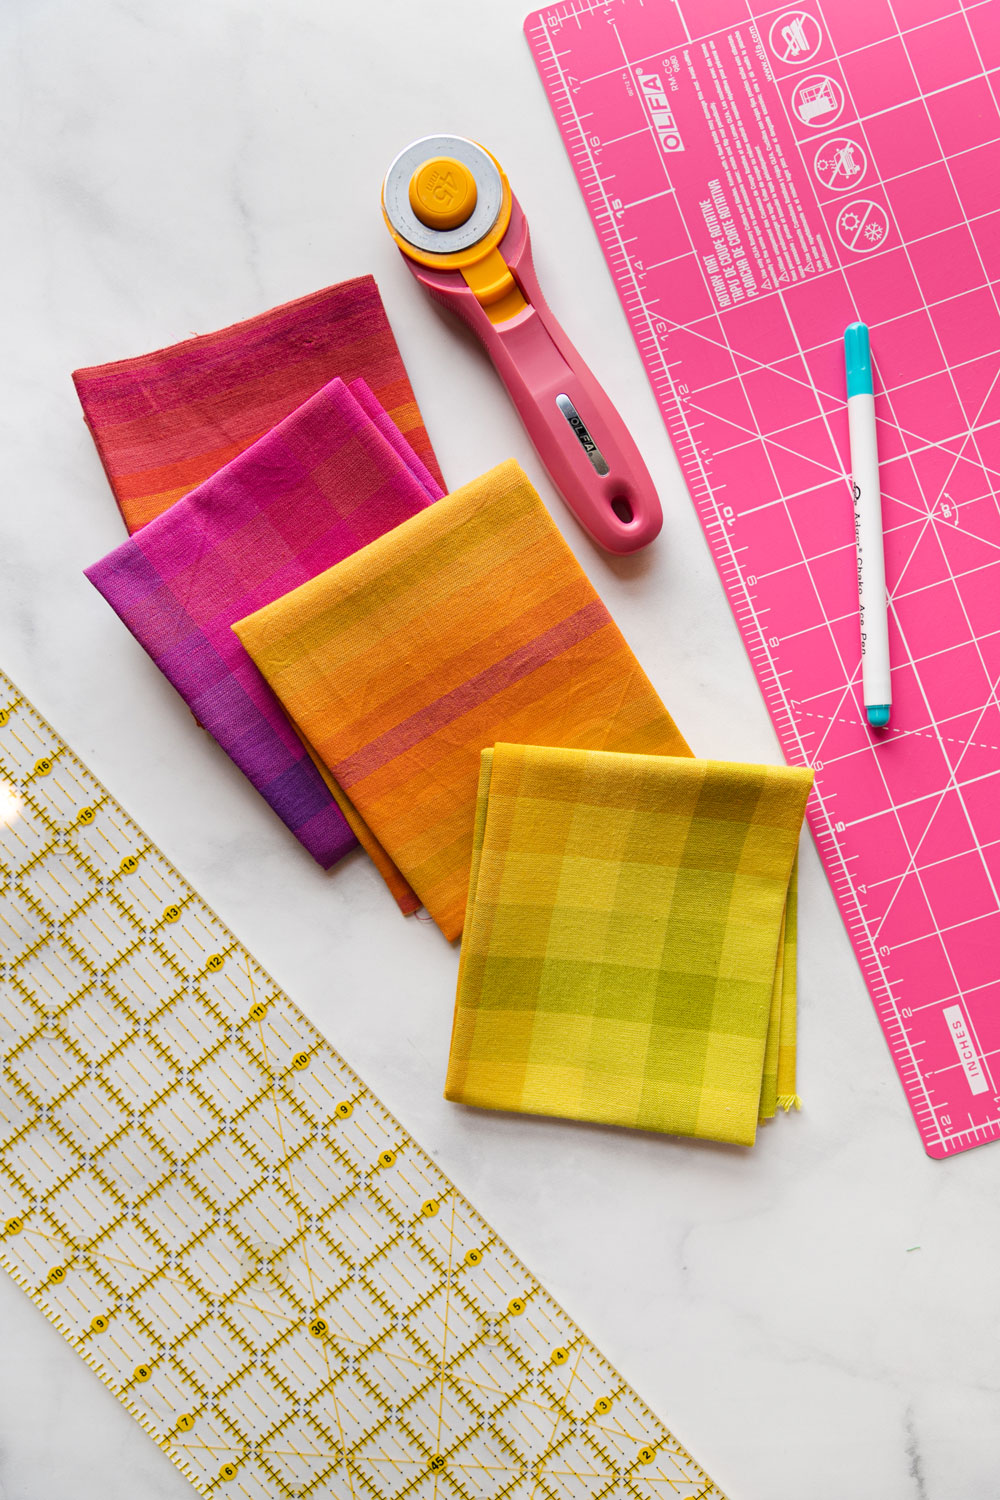 In this free reusable market bag tutorial you only need basic sewing skills and 4 fat quarters of fabric. This sewing DIY is great for kids too! suzyquilts.com #DIYbag #beginnersewing #fatquarter